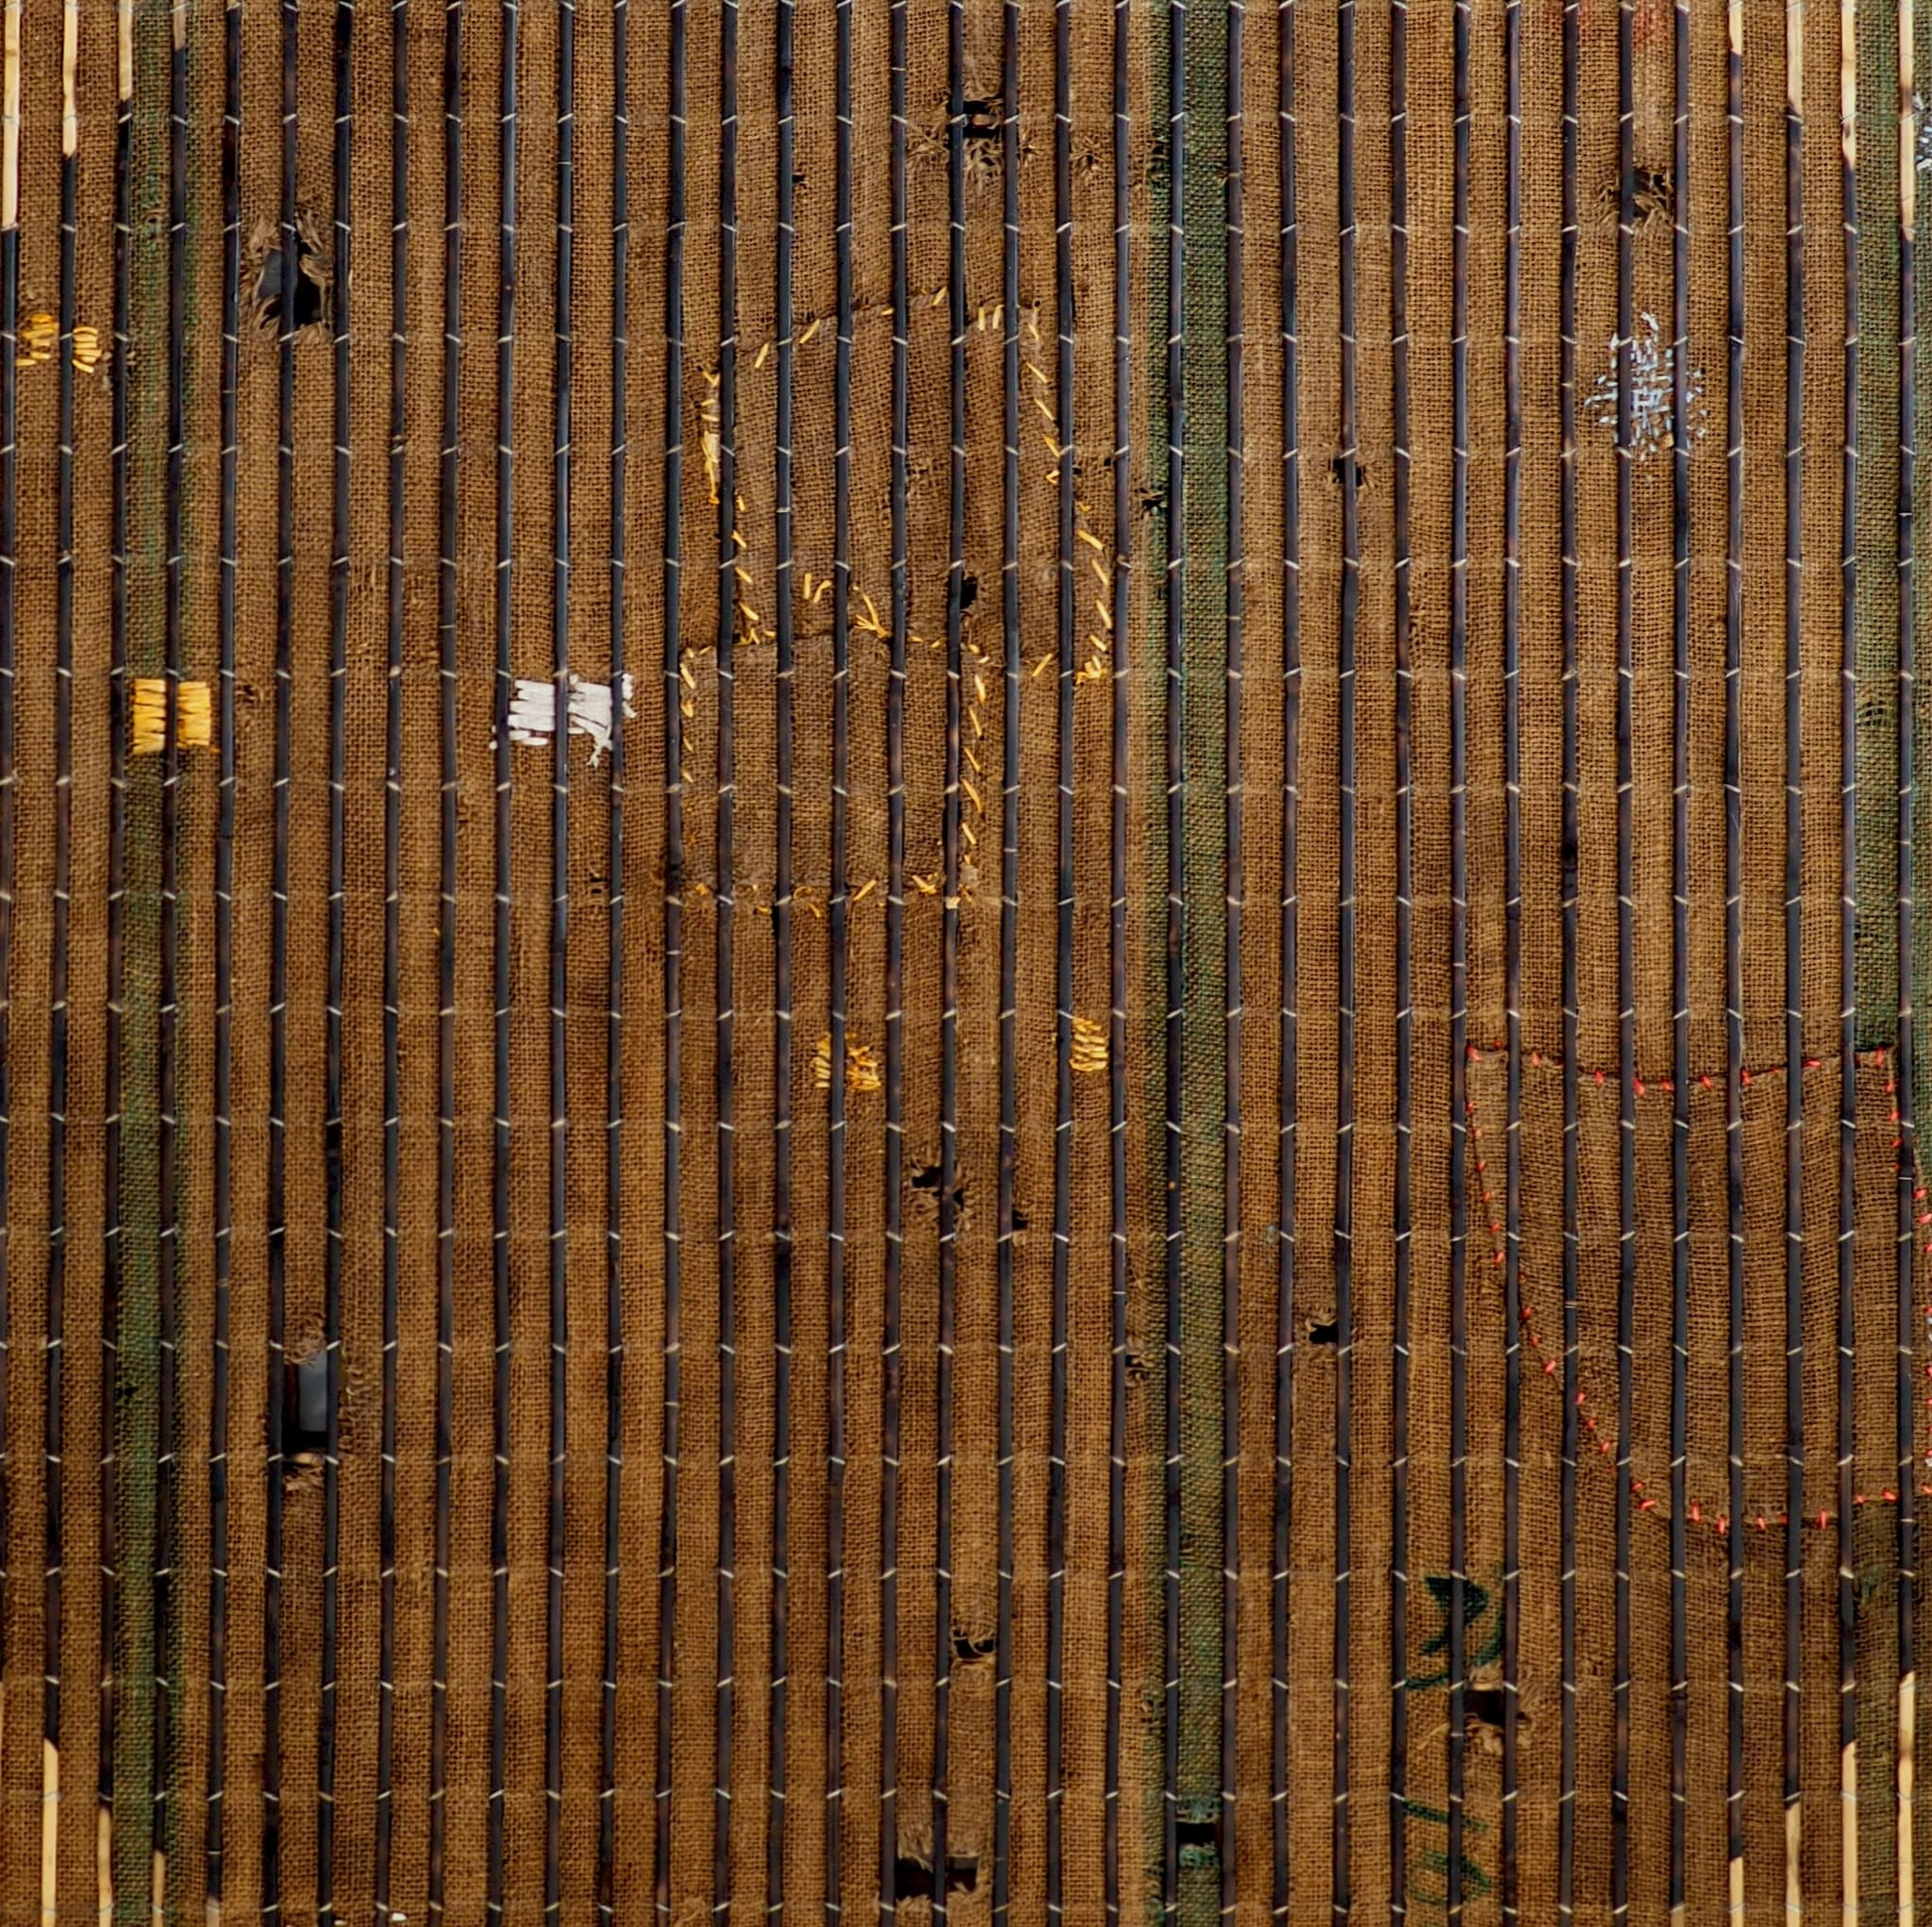 Green Stripes in Dark Circle by Sopheap Pich